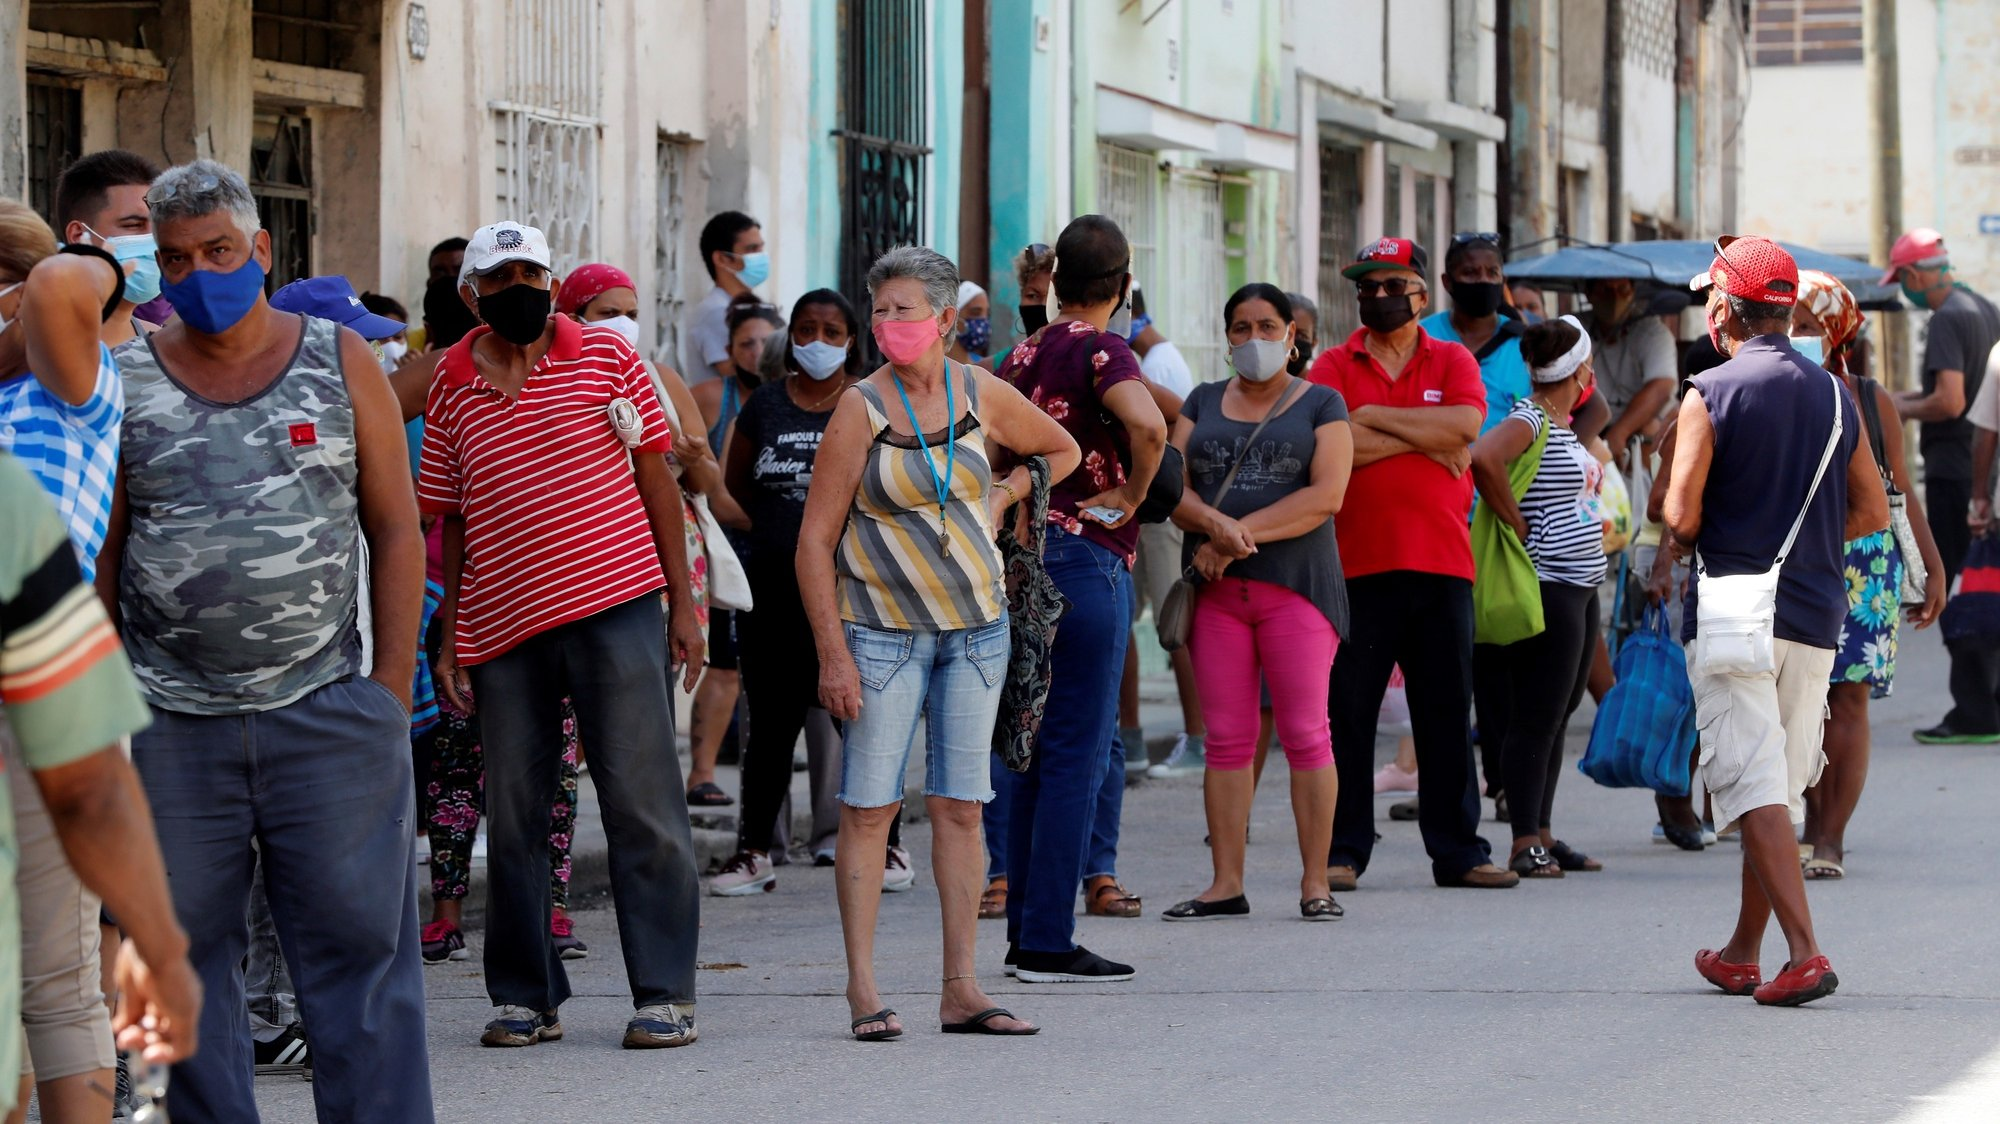 epa09329211 People wear face masks as they queue to enter a market, in Havana, Cuba, on 07 July 2021. Cuba faces a new spike in coronavirus rates, with the Matanzas province suffering the worst part and close to health facilities collapse.  EPA/Ernesto Mastrascusa